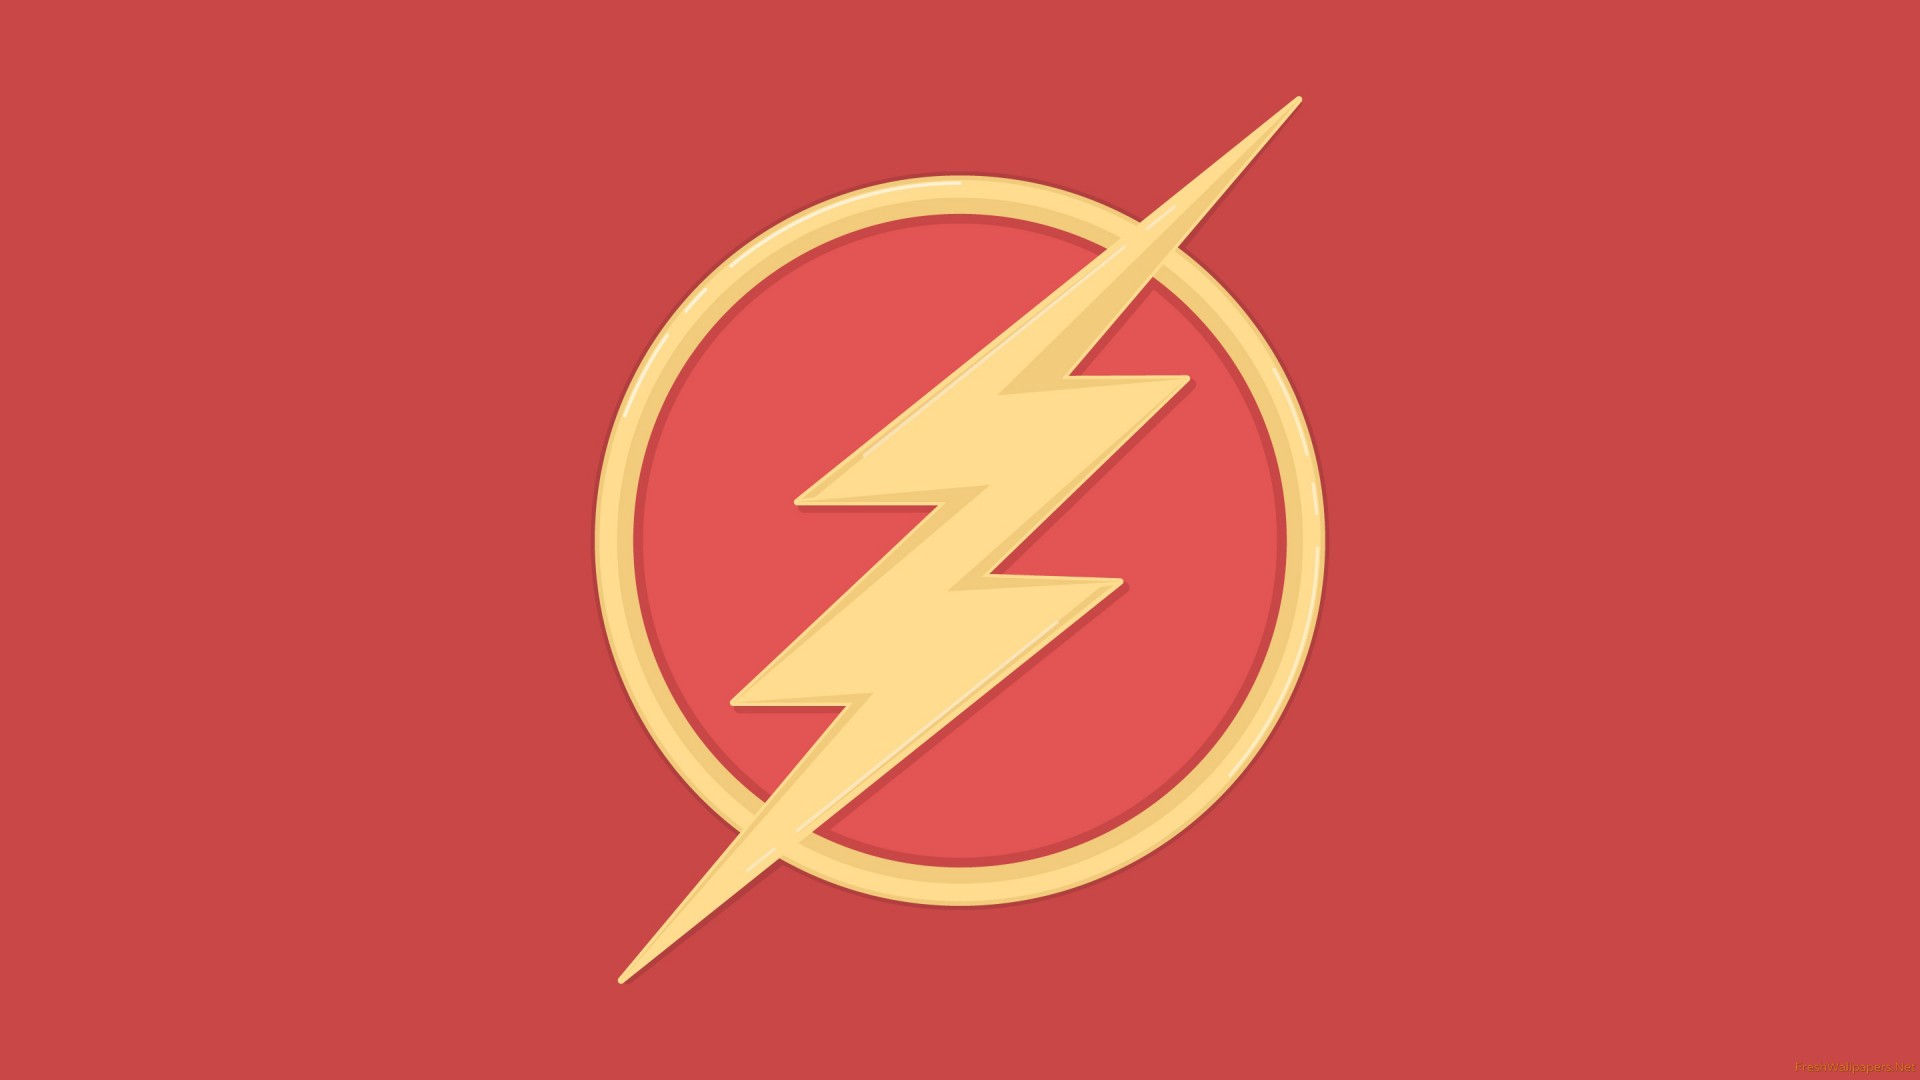 the flash logo wallpaper #18